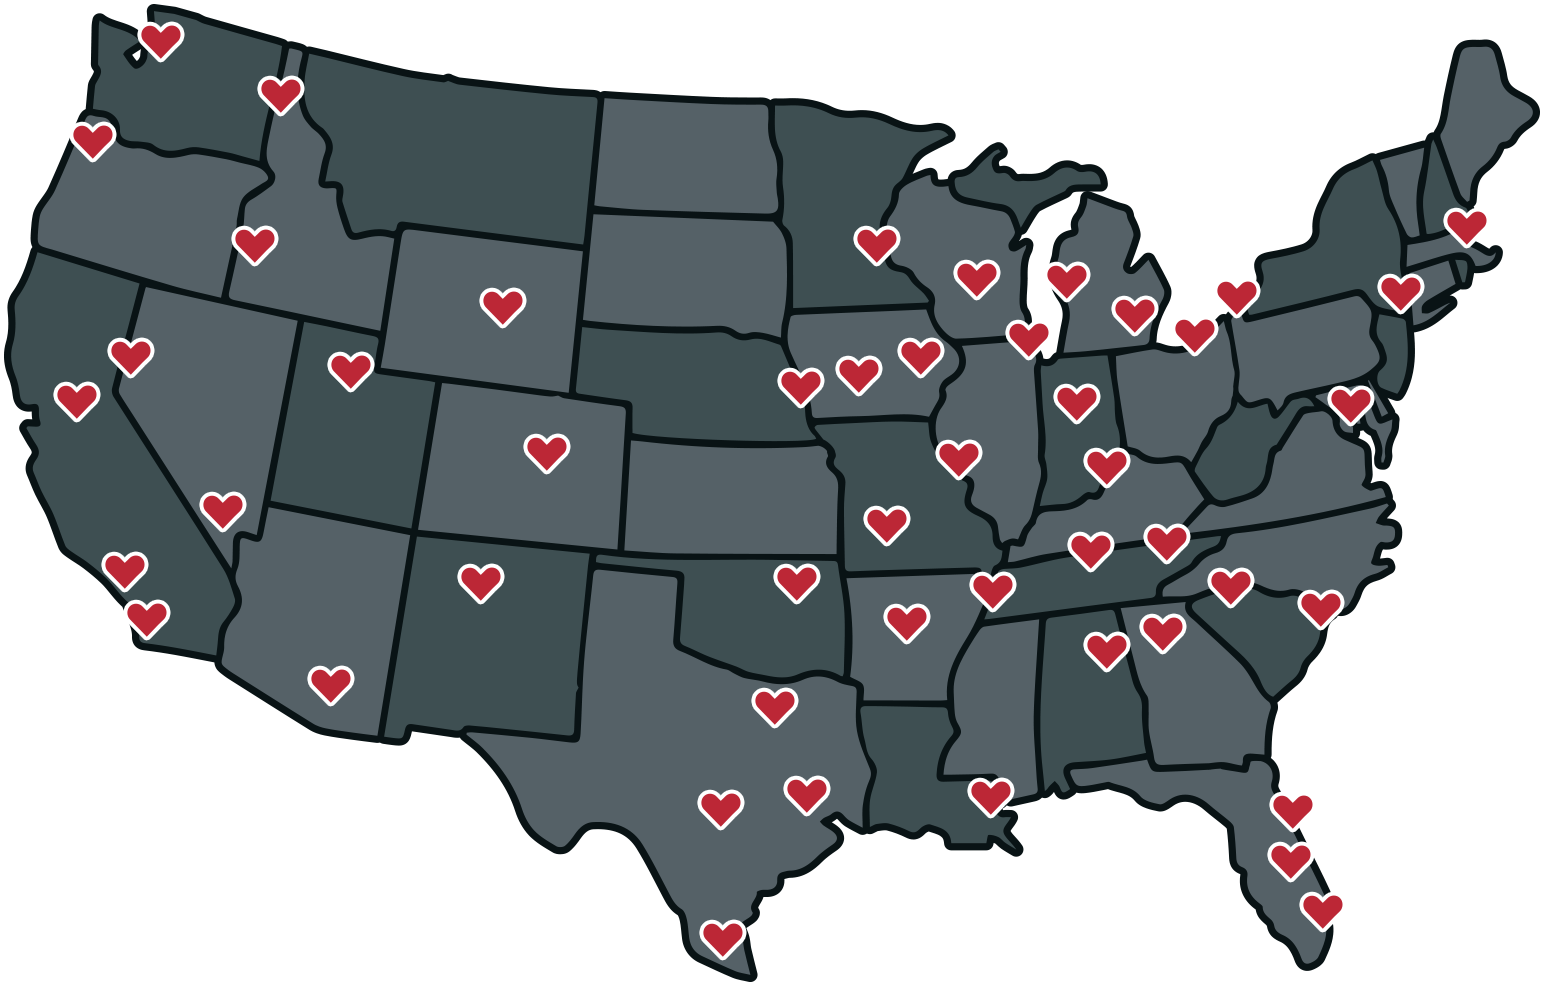 Final-Stacked-Hearts-Map